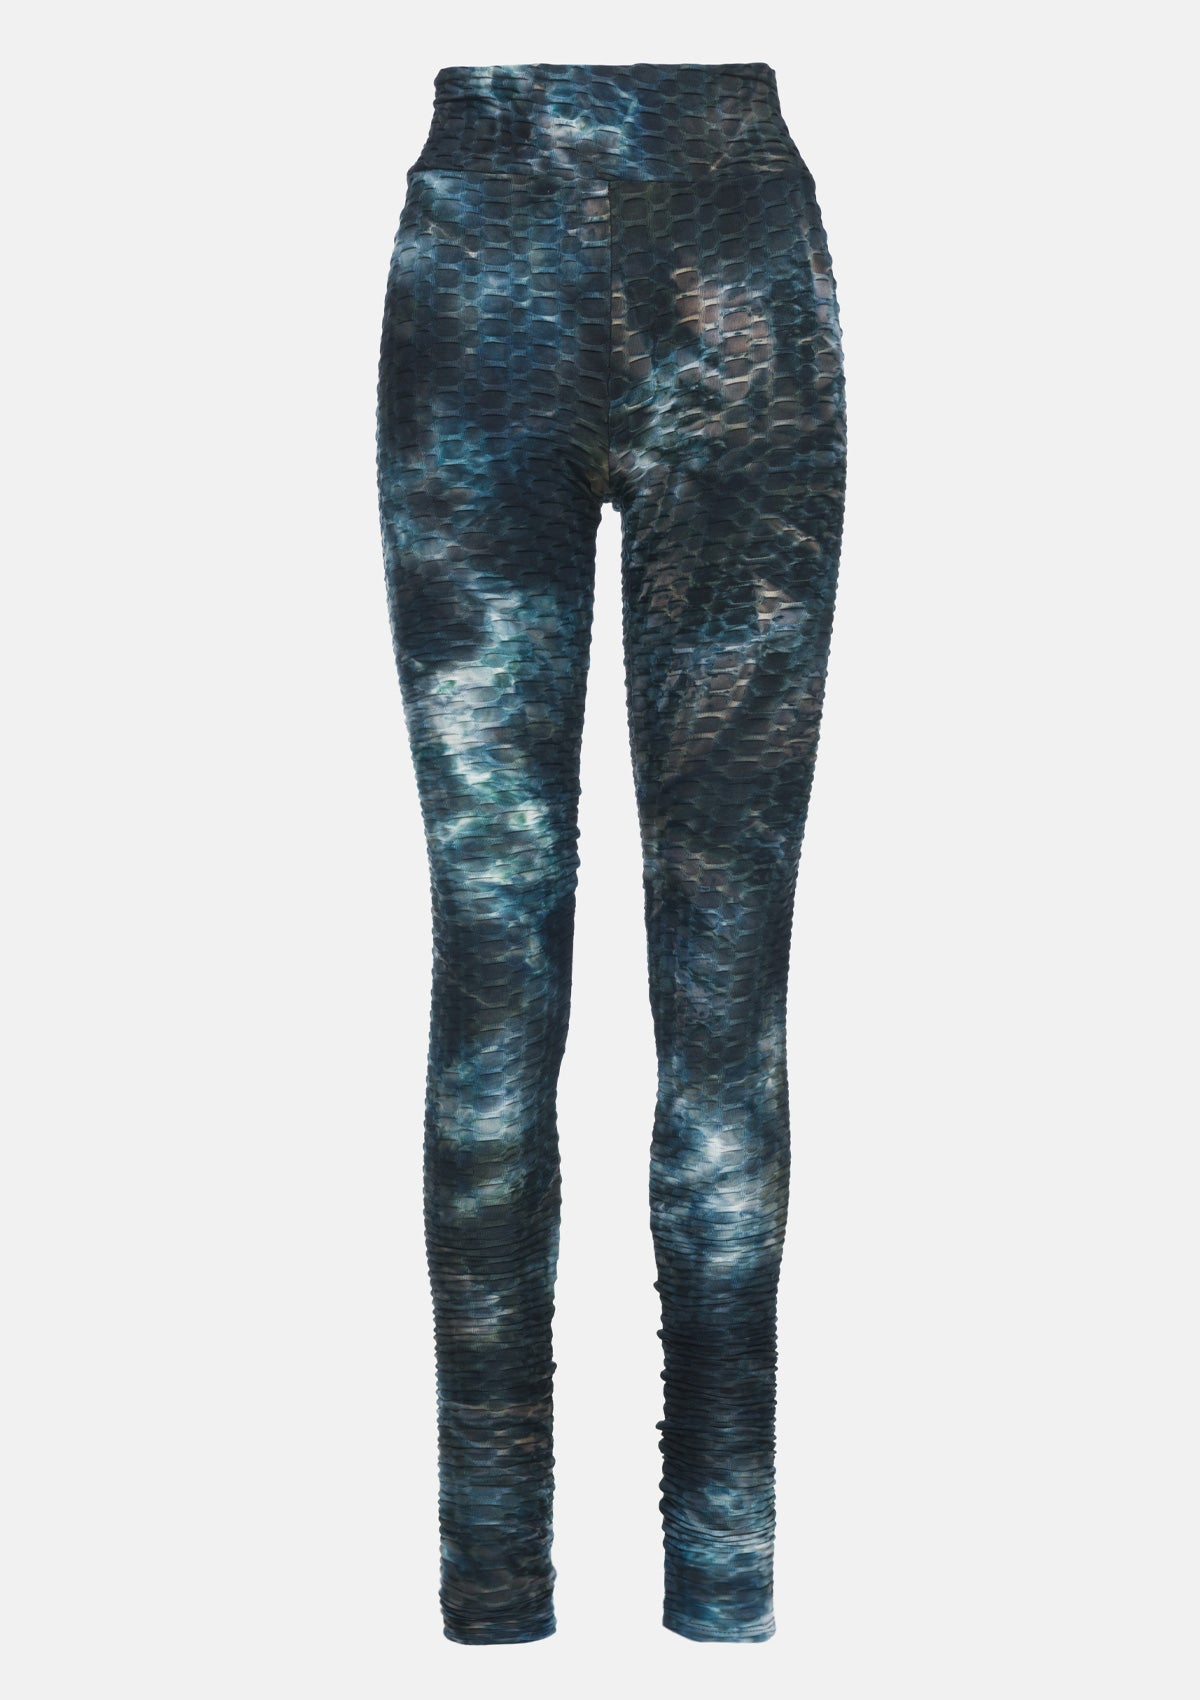 Alloy Apparel Tall Honeycomb Ruched Leggings for Women in Black Tie Dye Size S   Polyester